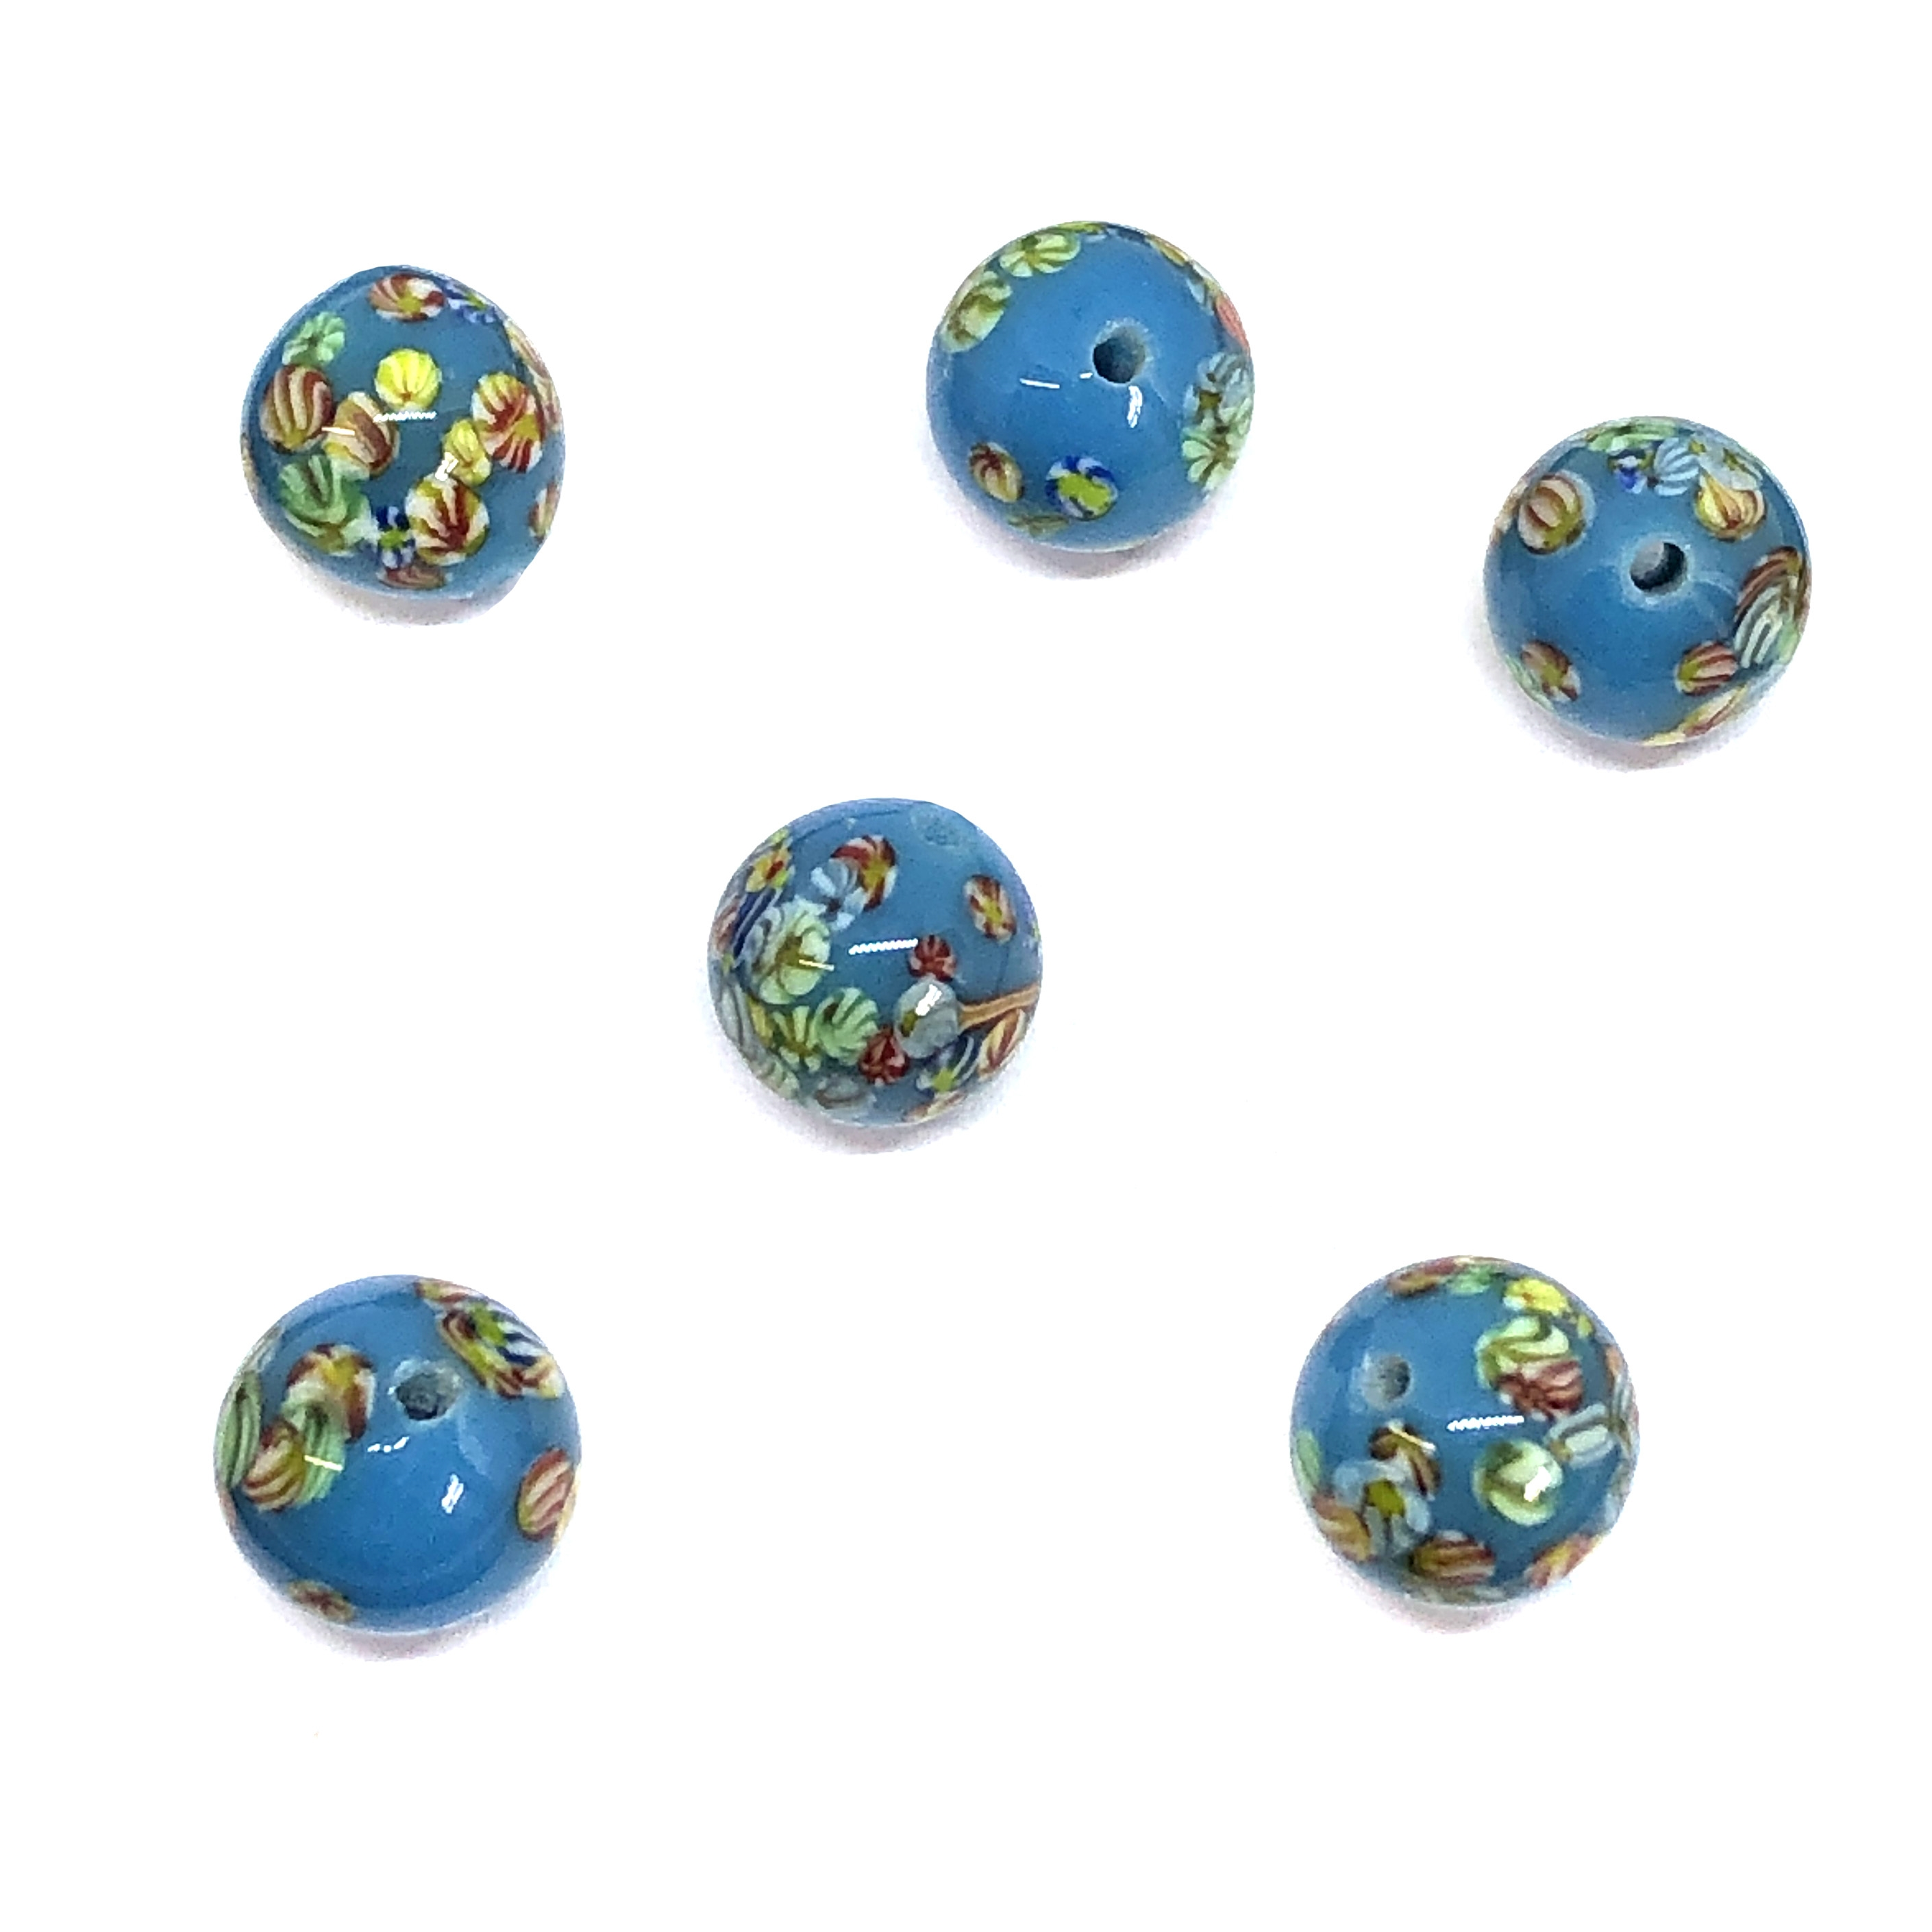 Floral glass round beads, Japanese Tombo beads, beading supplies, turquoise glass beads, blue millefleurs, jewelry making, jewelry supplies, vintage supplies, B'sue, round beads, 8mm, glass beads, 01006, blue beads, turquoise blue, Tombo